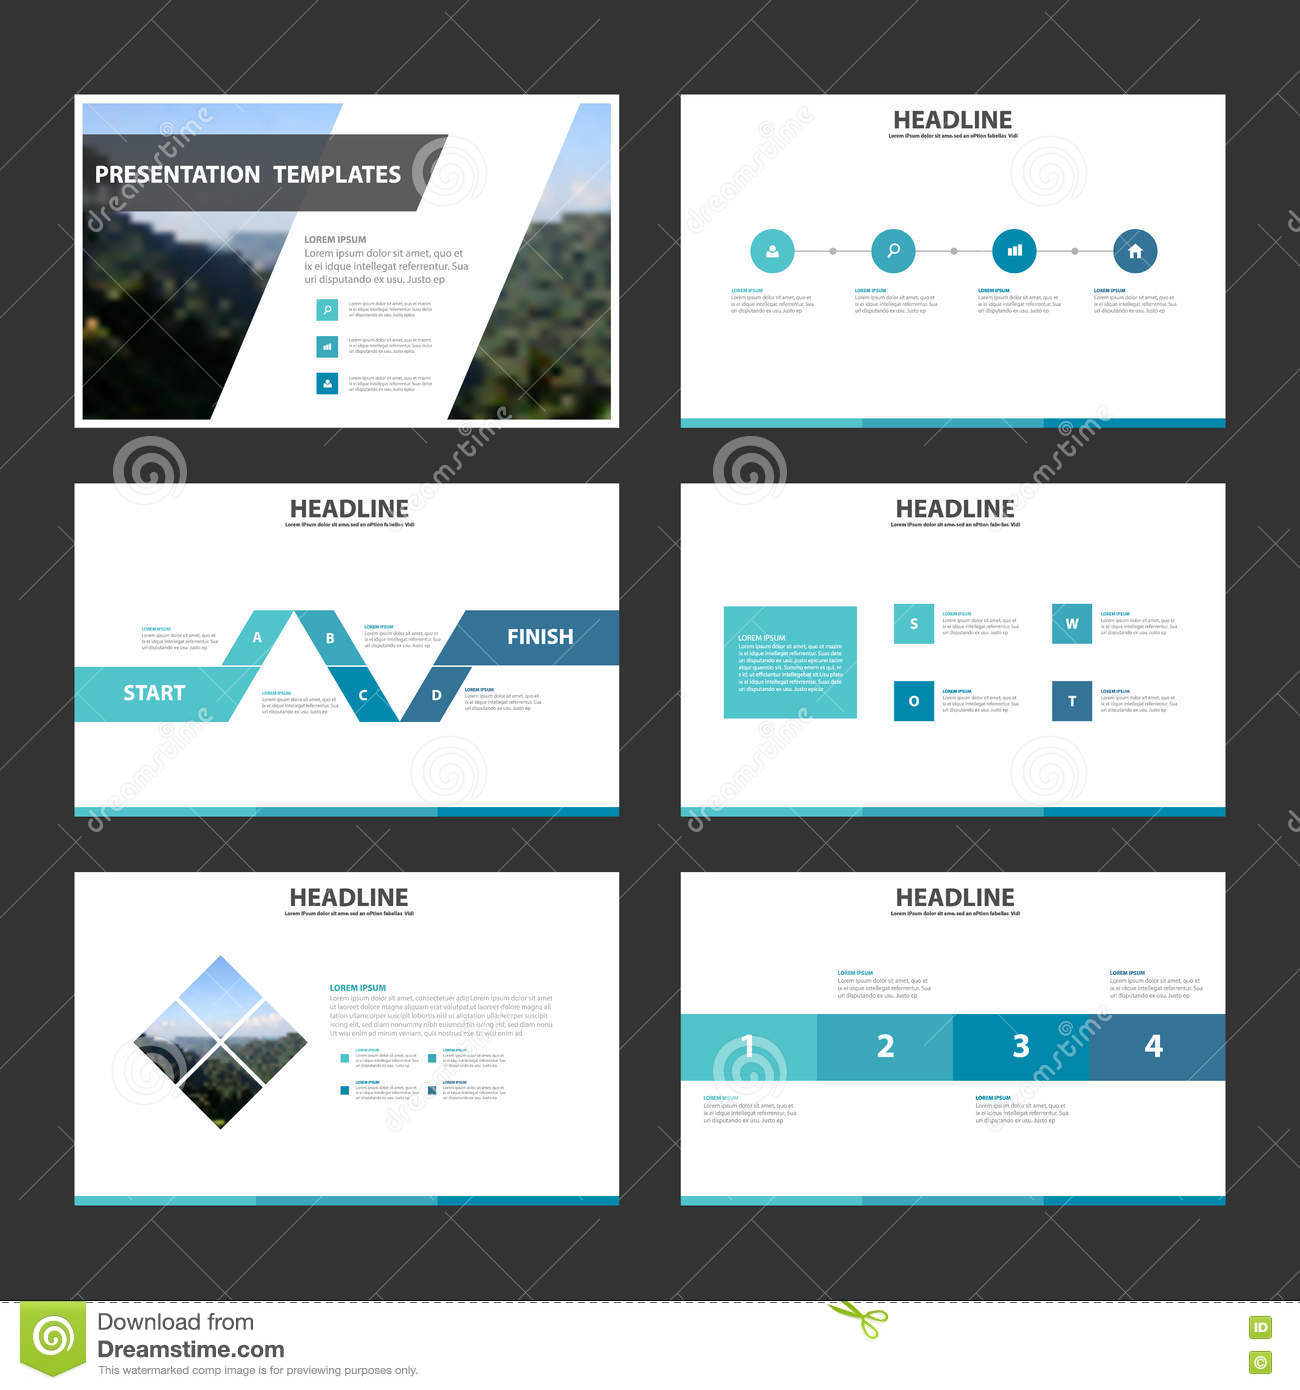 blue minimal presentation templates infographic elements flat, Presentation templates